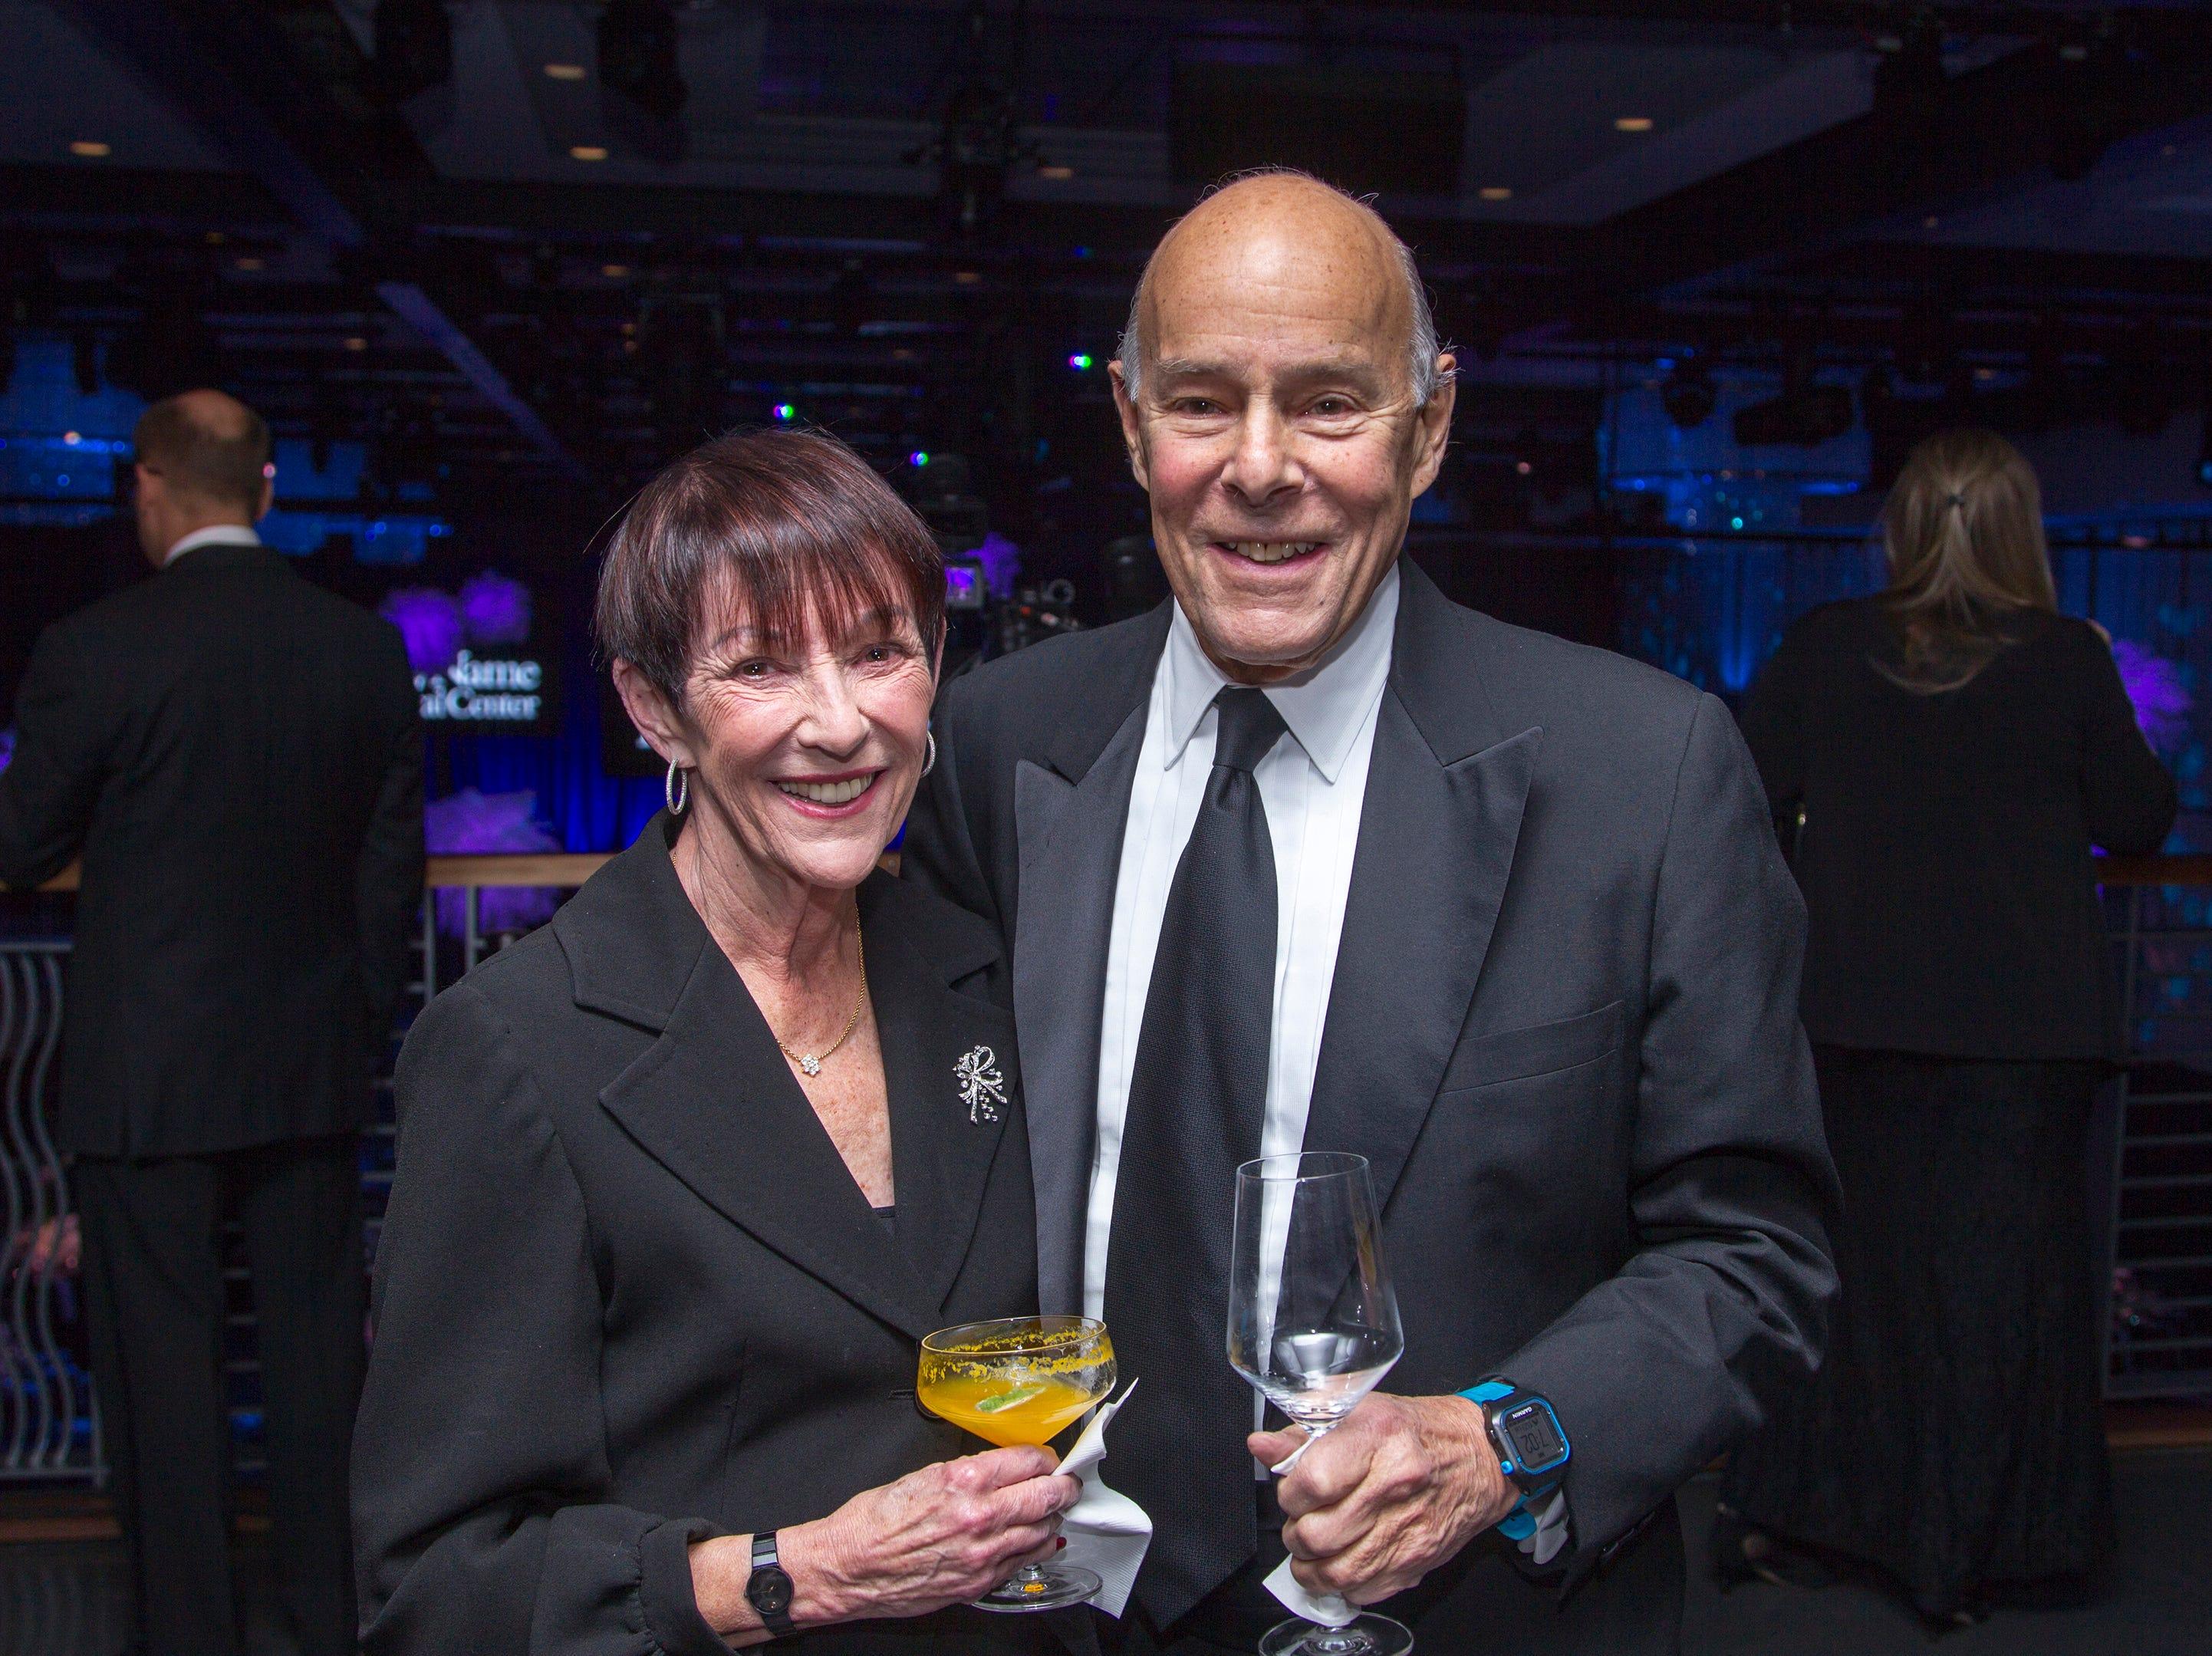 Jane and Michael Griffinger. Holy Name Medical Center held its 2018 Founders Ball in NYC at Ziegfeld Ballroom. 11/17/2018